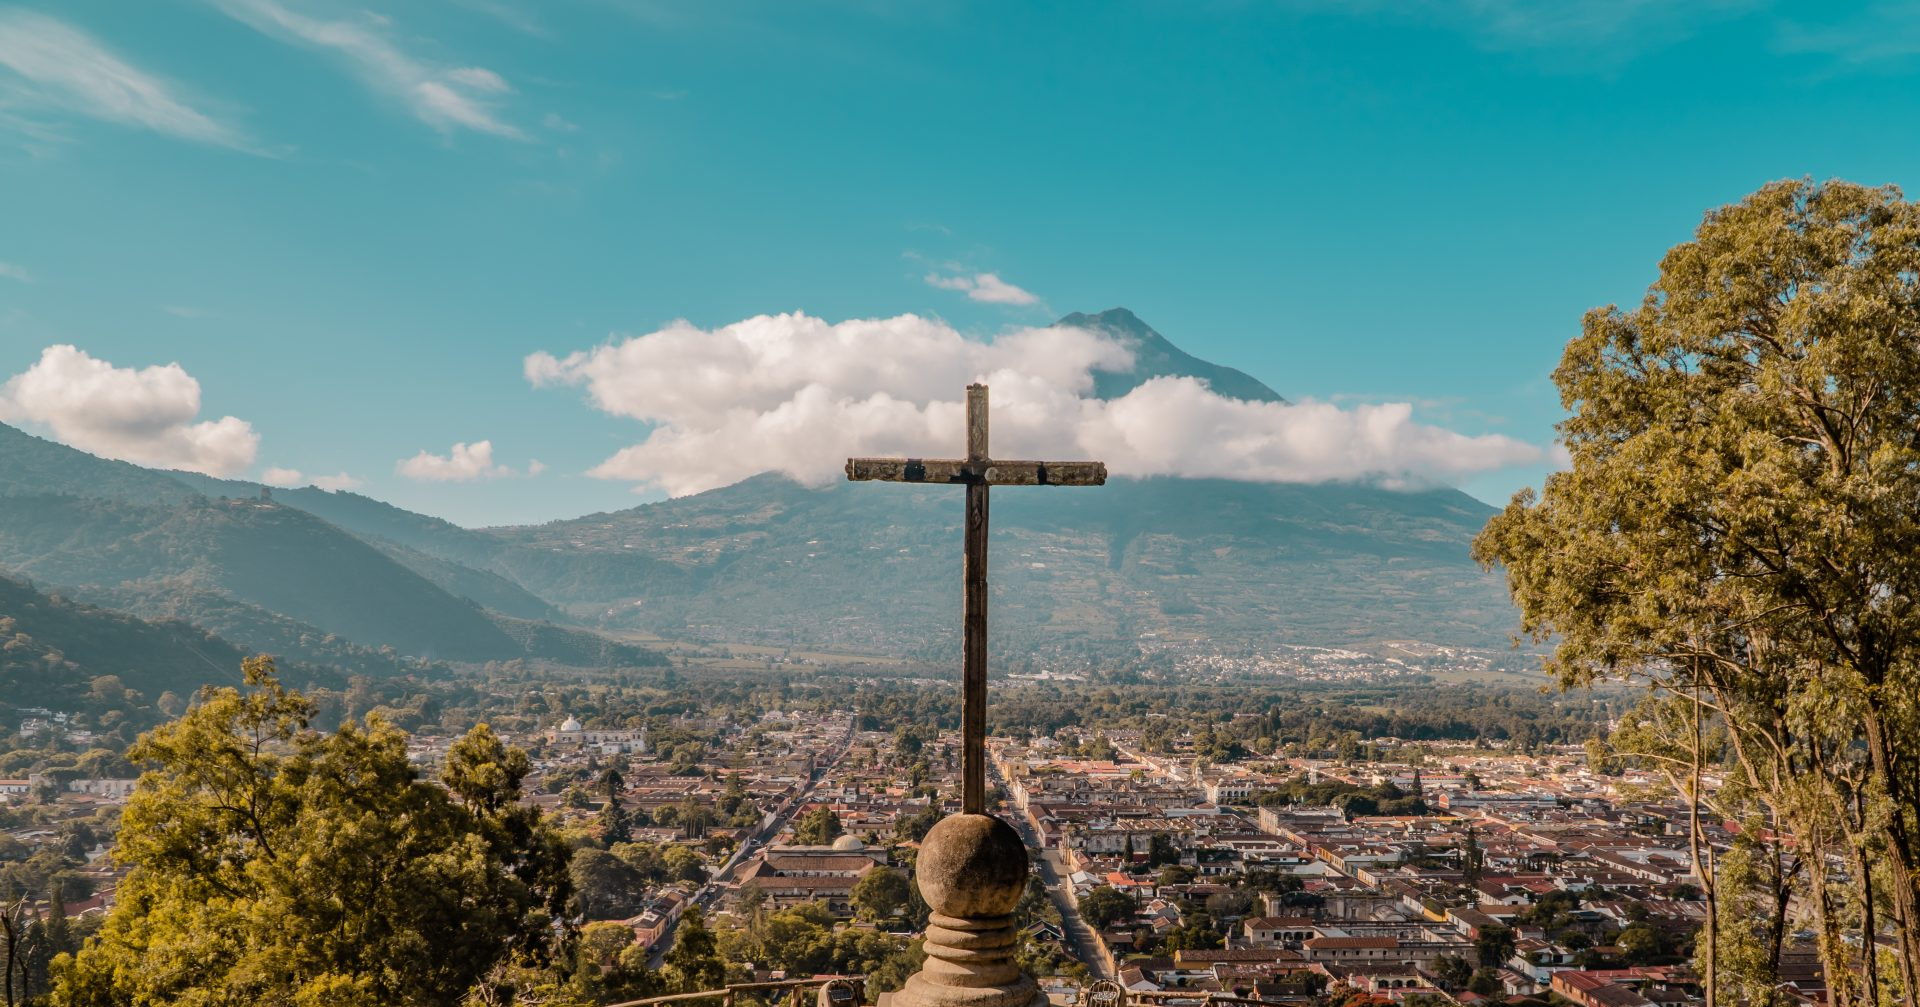 Things to do in Antigua Guatemala - featured - sunrise view of the city of Antigua, Guatemala with Agua Volcano from Cerro de la Cruz Viewpoint